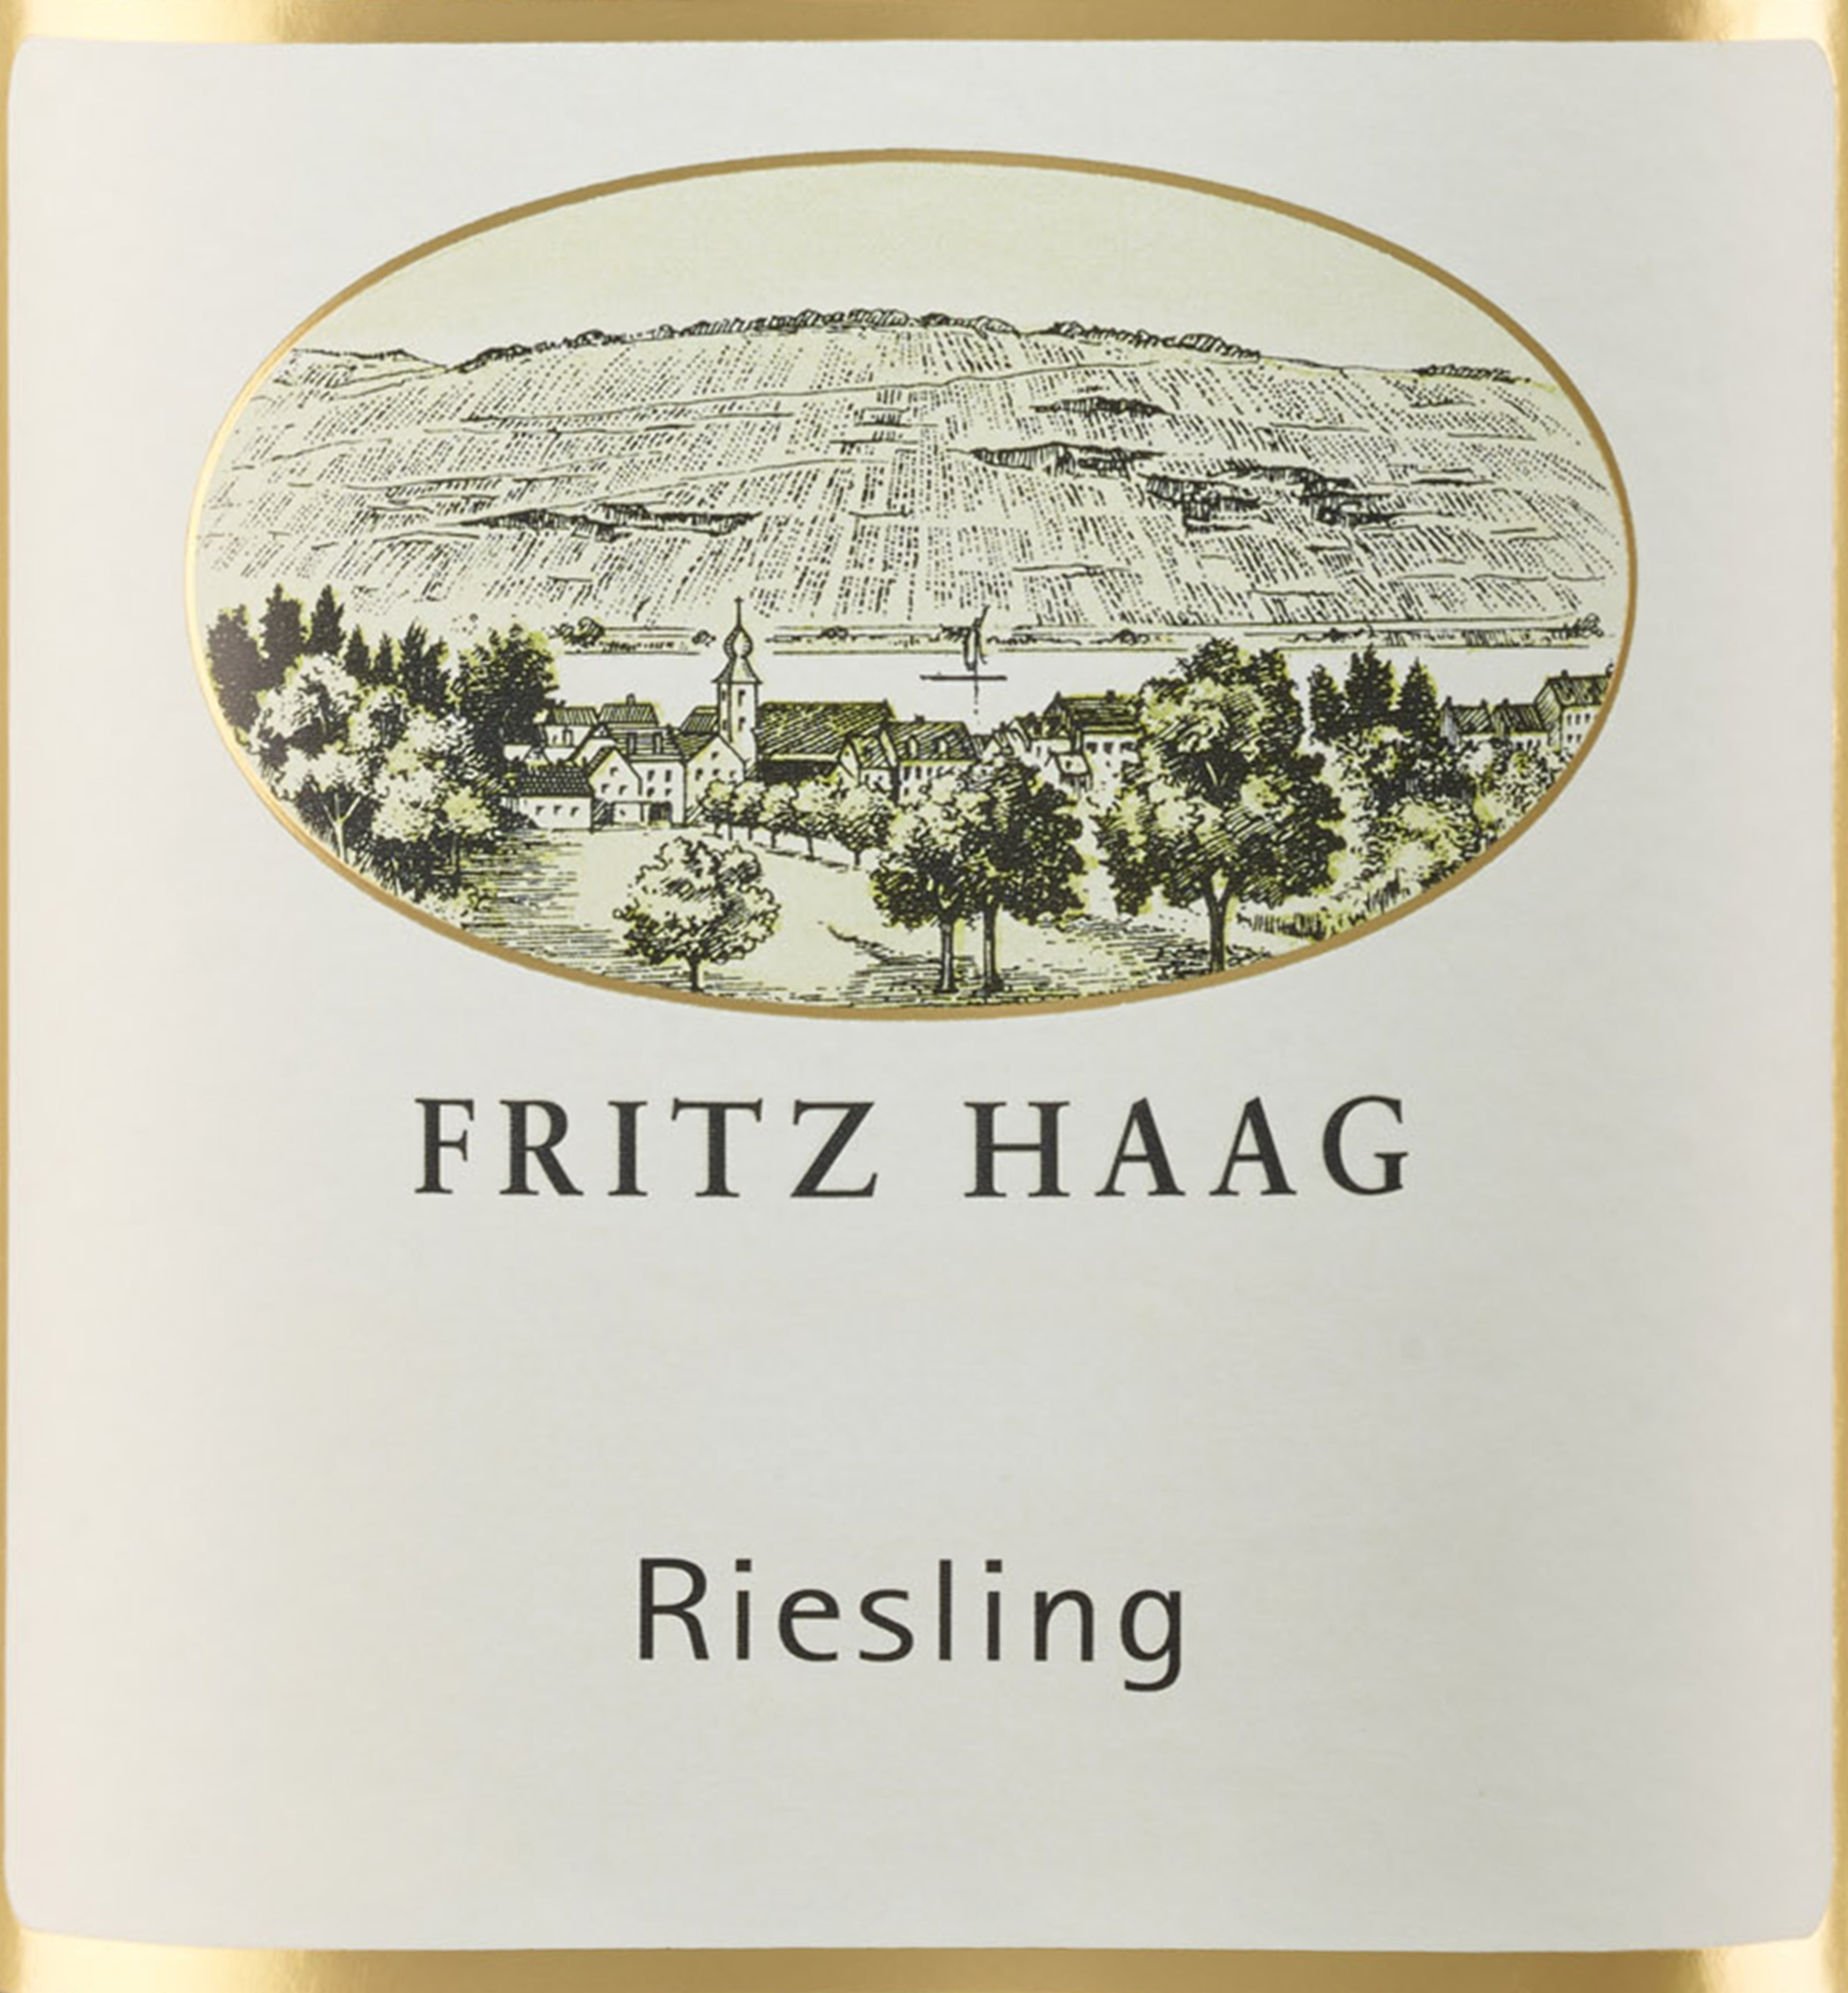 Fritz Haag Riesling 2019